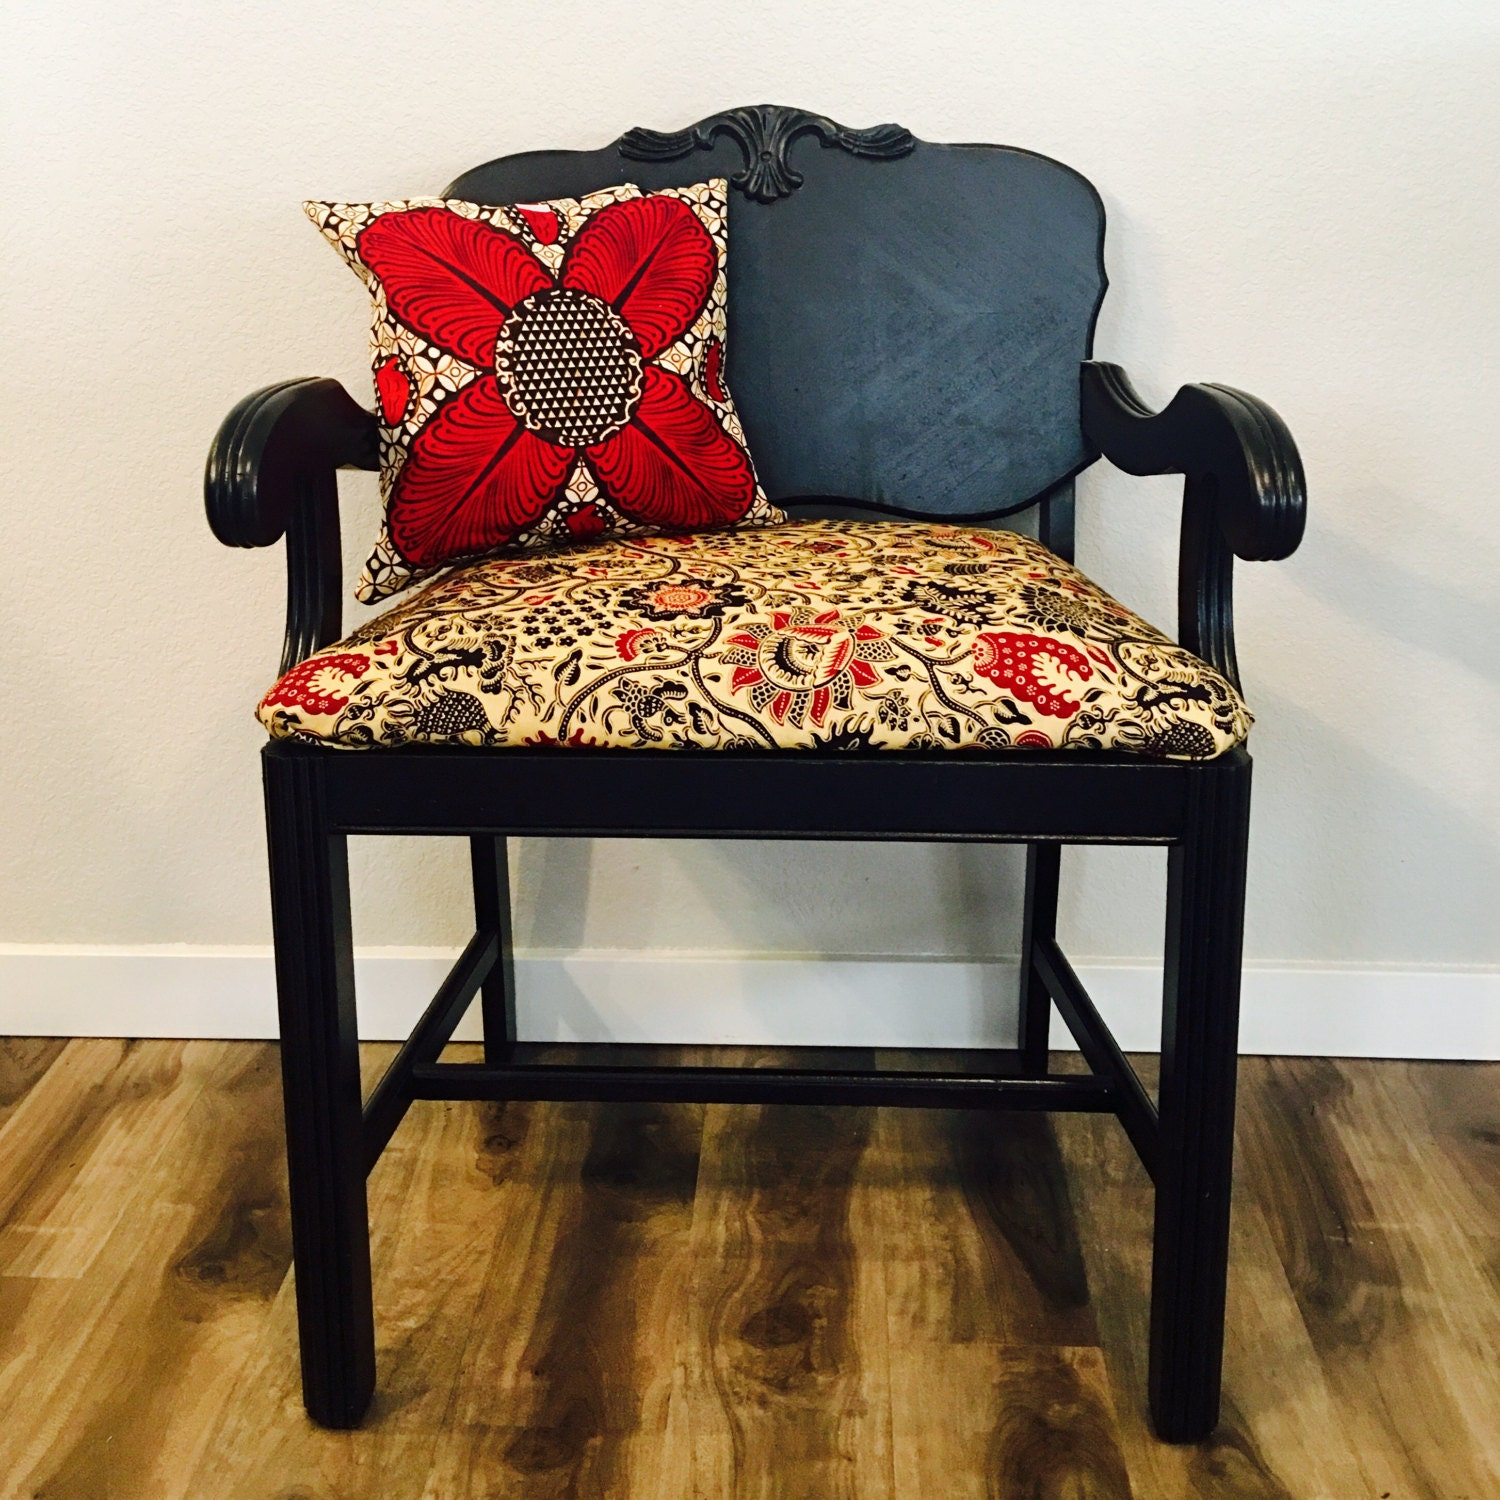 Refurbished vanity chair - wood chair - african print - black, red ...